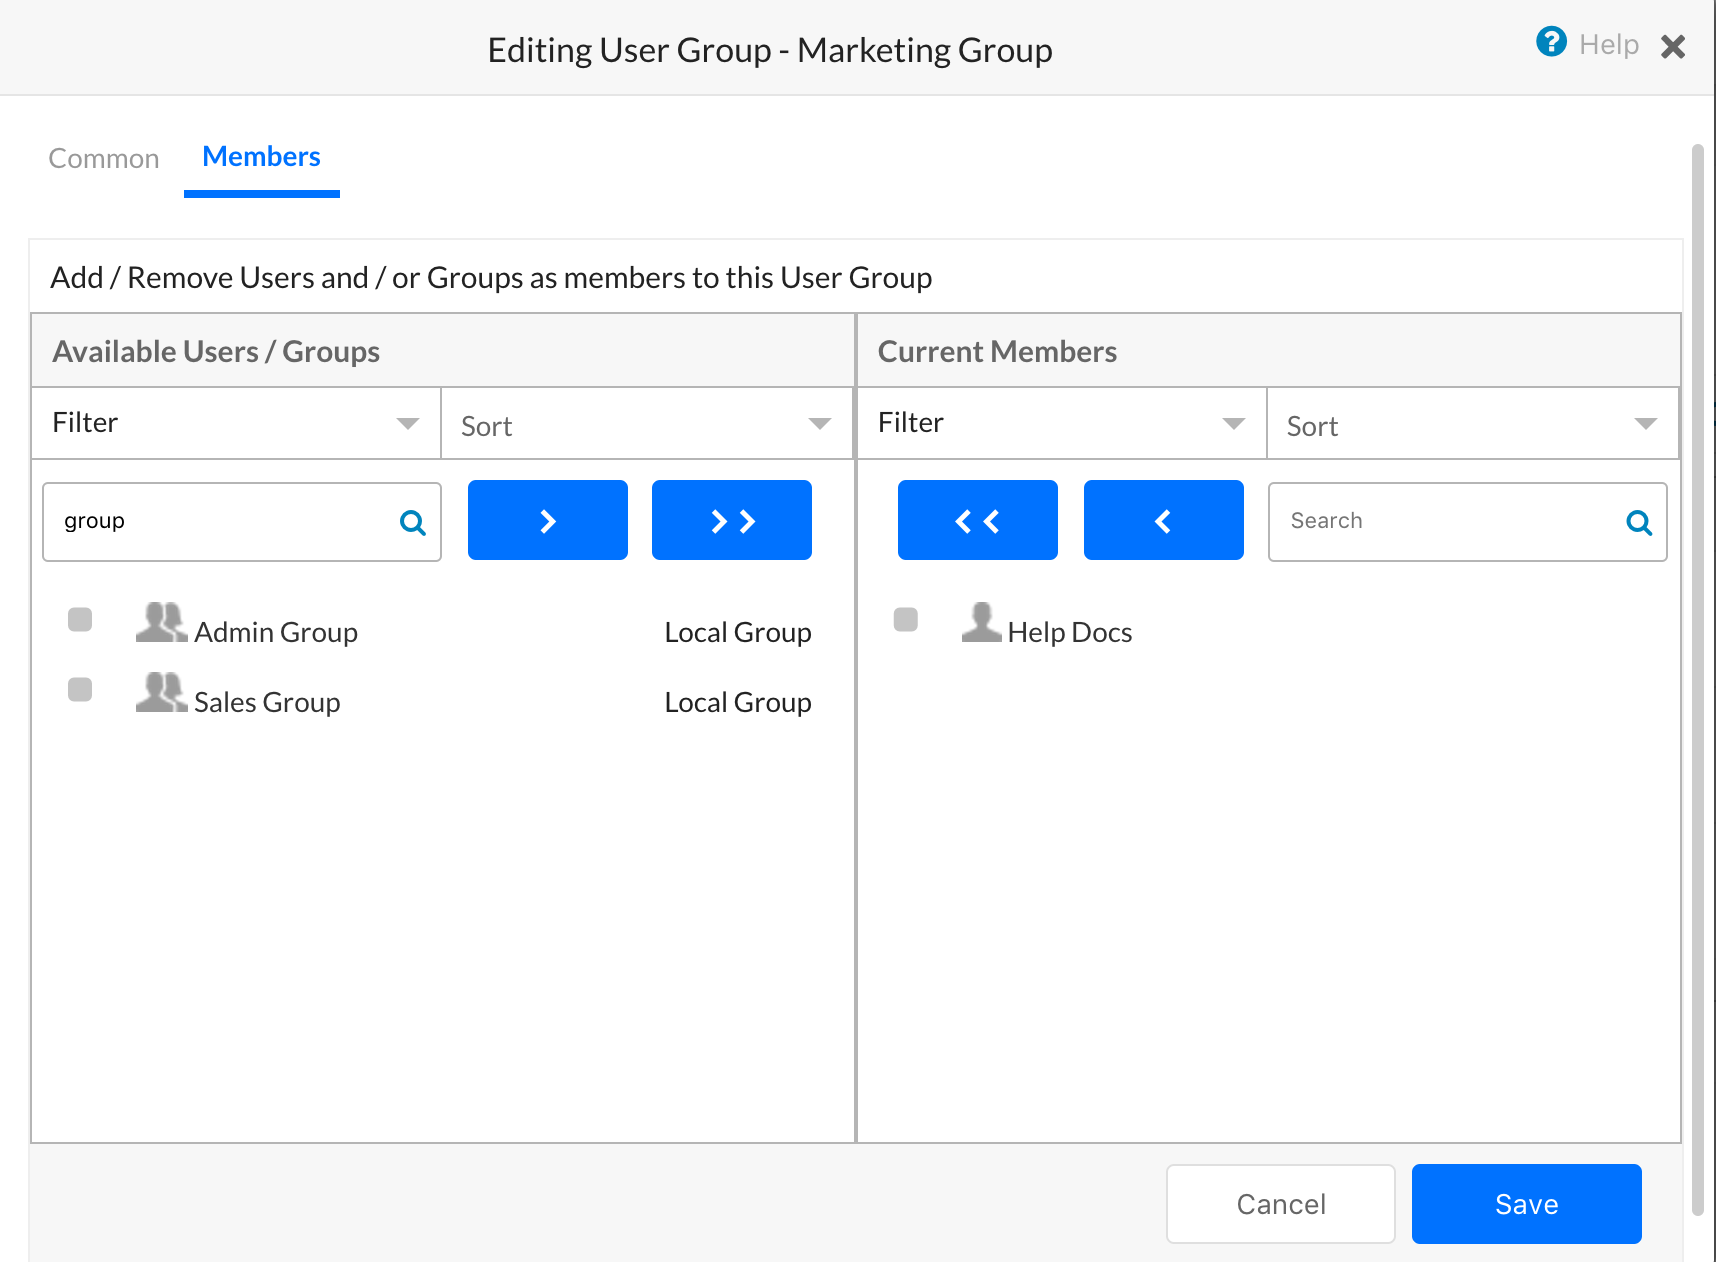 Editing User Groups